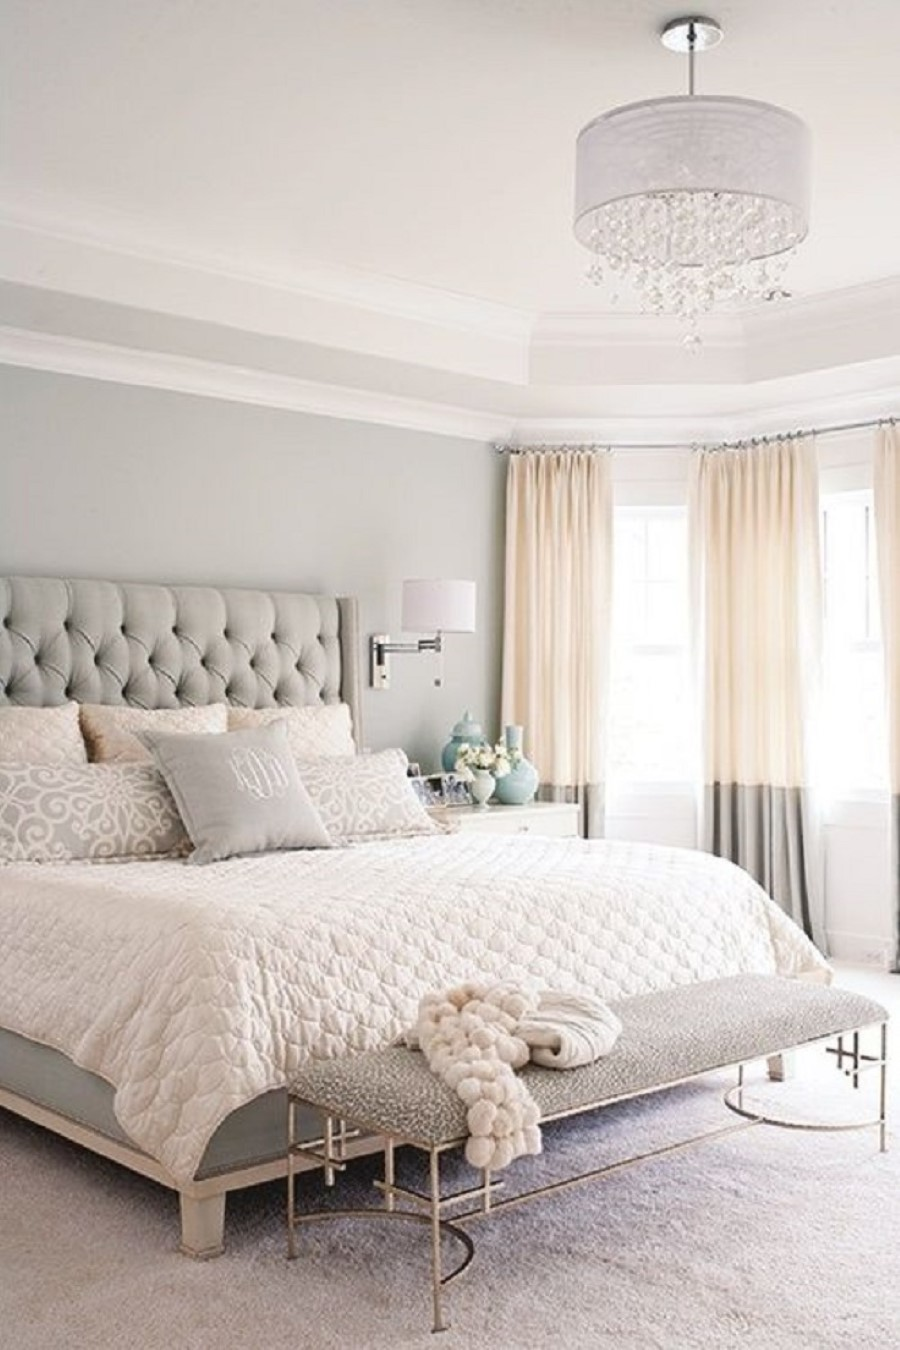 Best Paint Colors for Small Room - Some Tips - HomesFeed on Good Bedroom Ideas For Small Rooms  id=33407